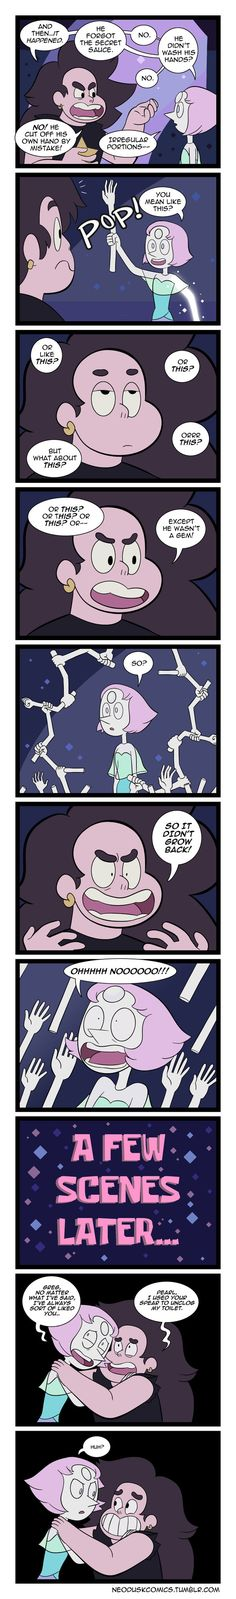 Steven Universe: The Gem Slashing Slinker by Neodusk.deviantar… on Steven Universe: The Gem Slashing Slinker von Neodusk. Deviantart, Steven Universe Funny, Lapidot, Bubbline, Pokemon, Universe Art, It Goes On, Spongebob, Decir No